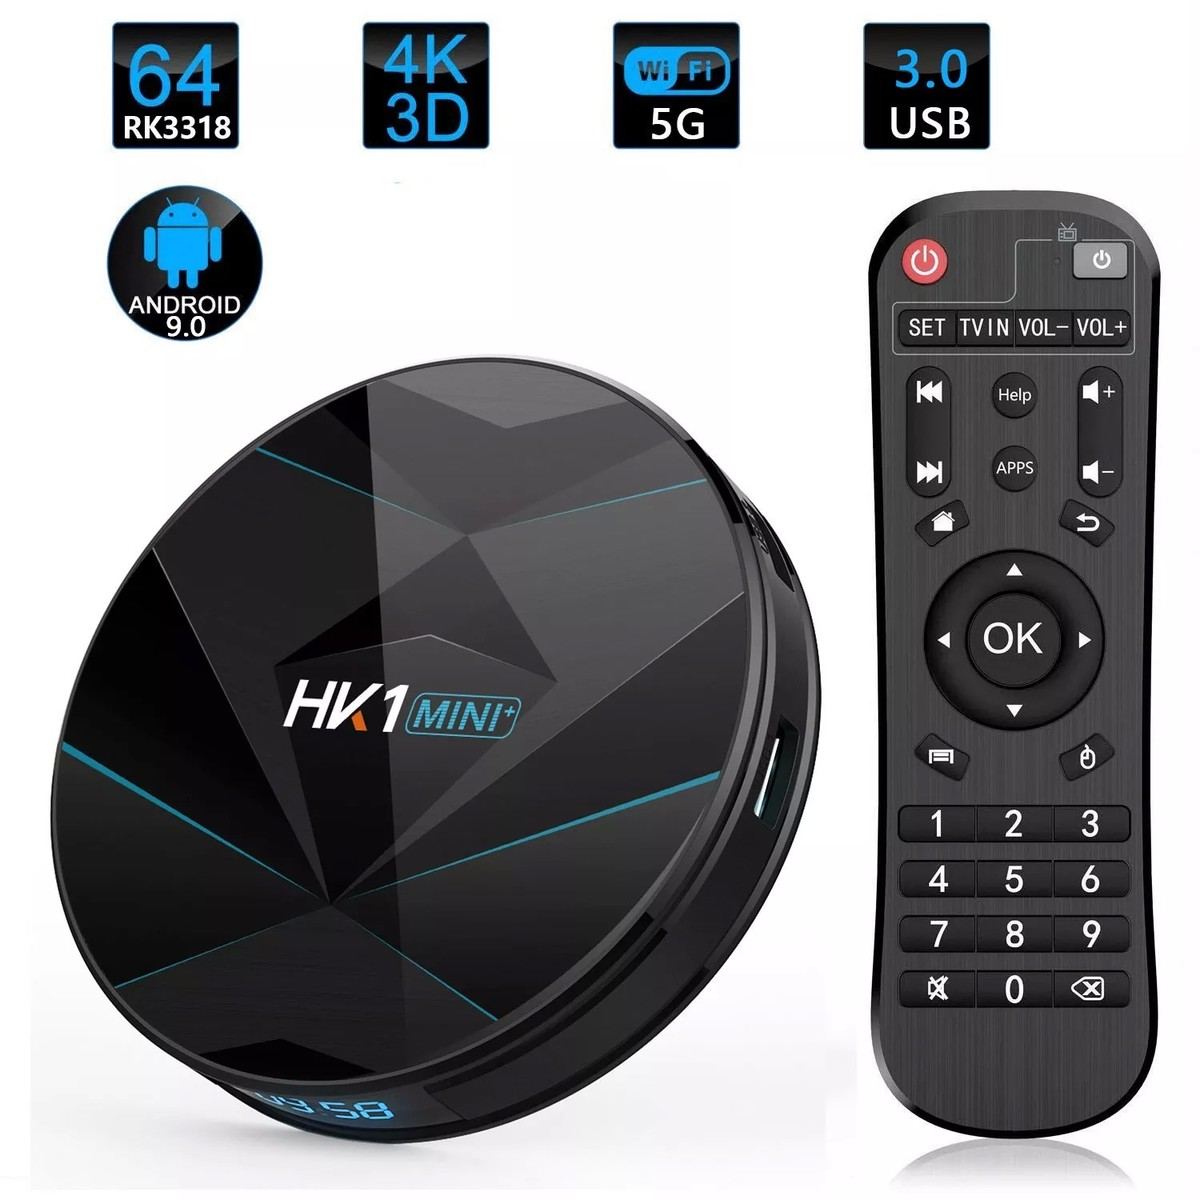 TV Box HK1 MINI+ plus RK3318 4/64GB Android 9.0 Pie